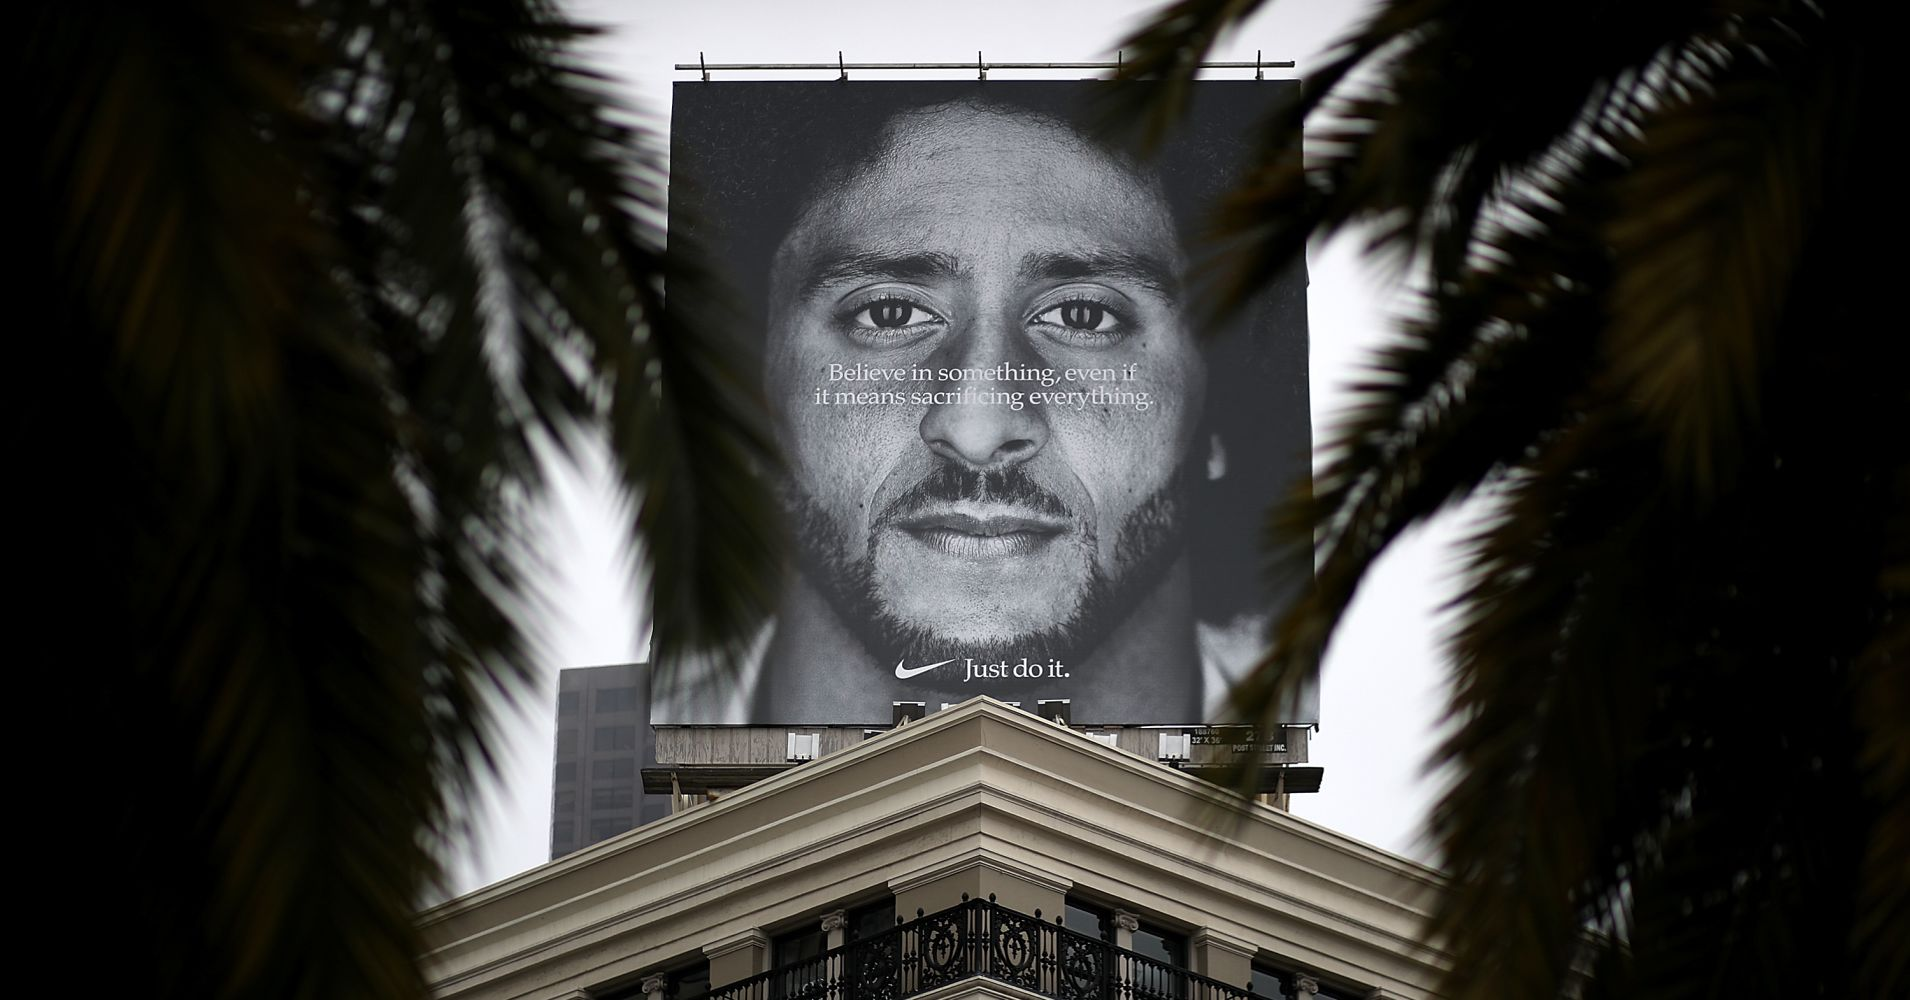 Bogus Nike coupon featuring Colin Kaepernick offers discount to 'people of color'